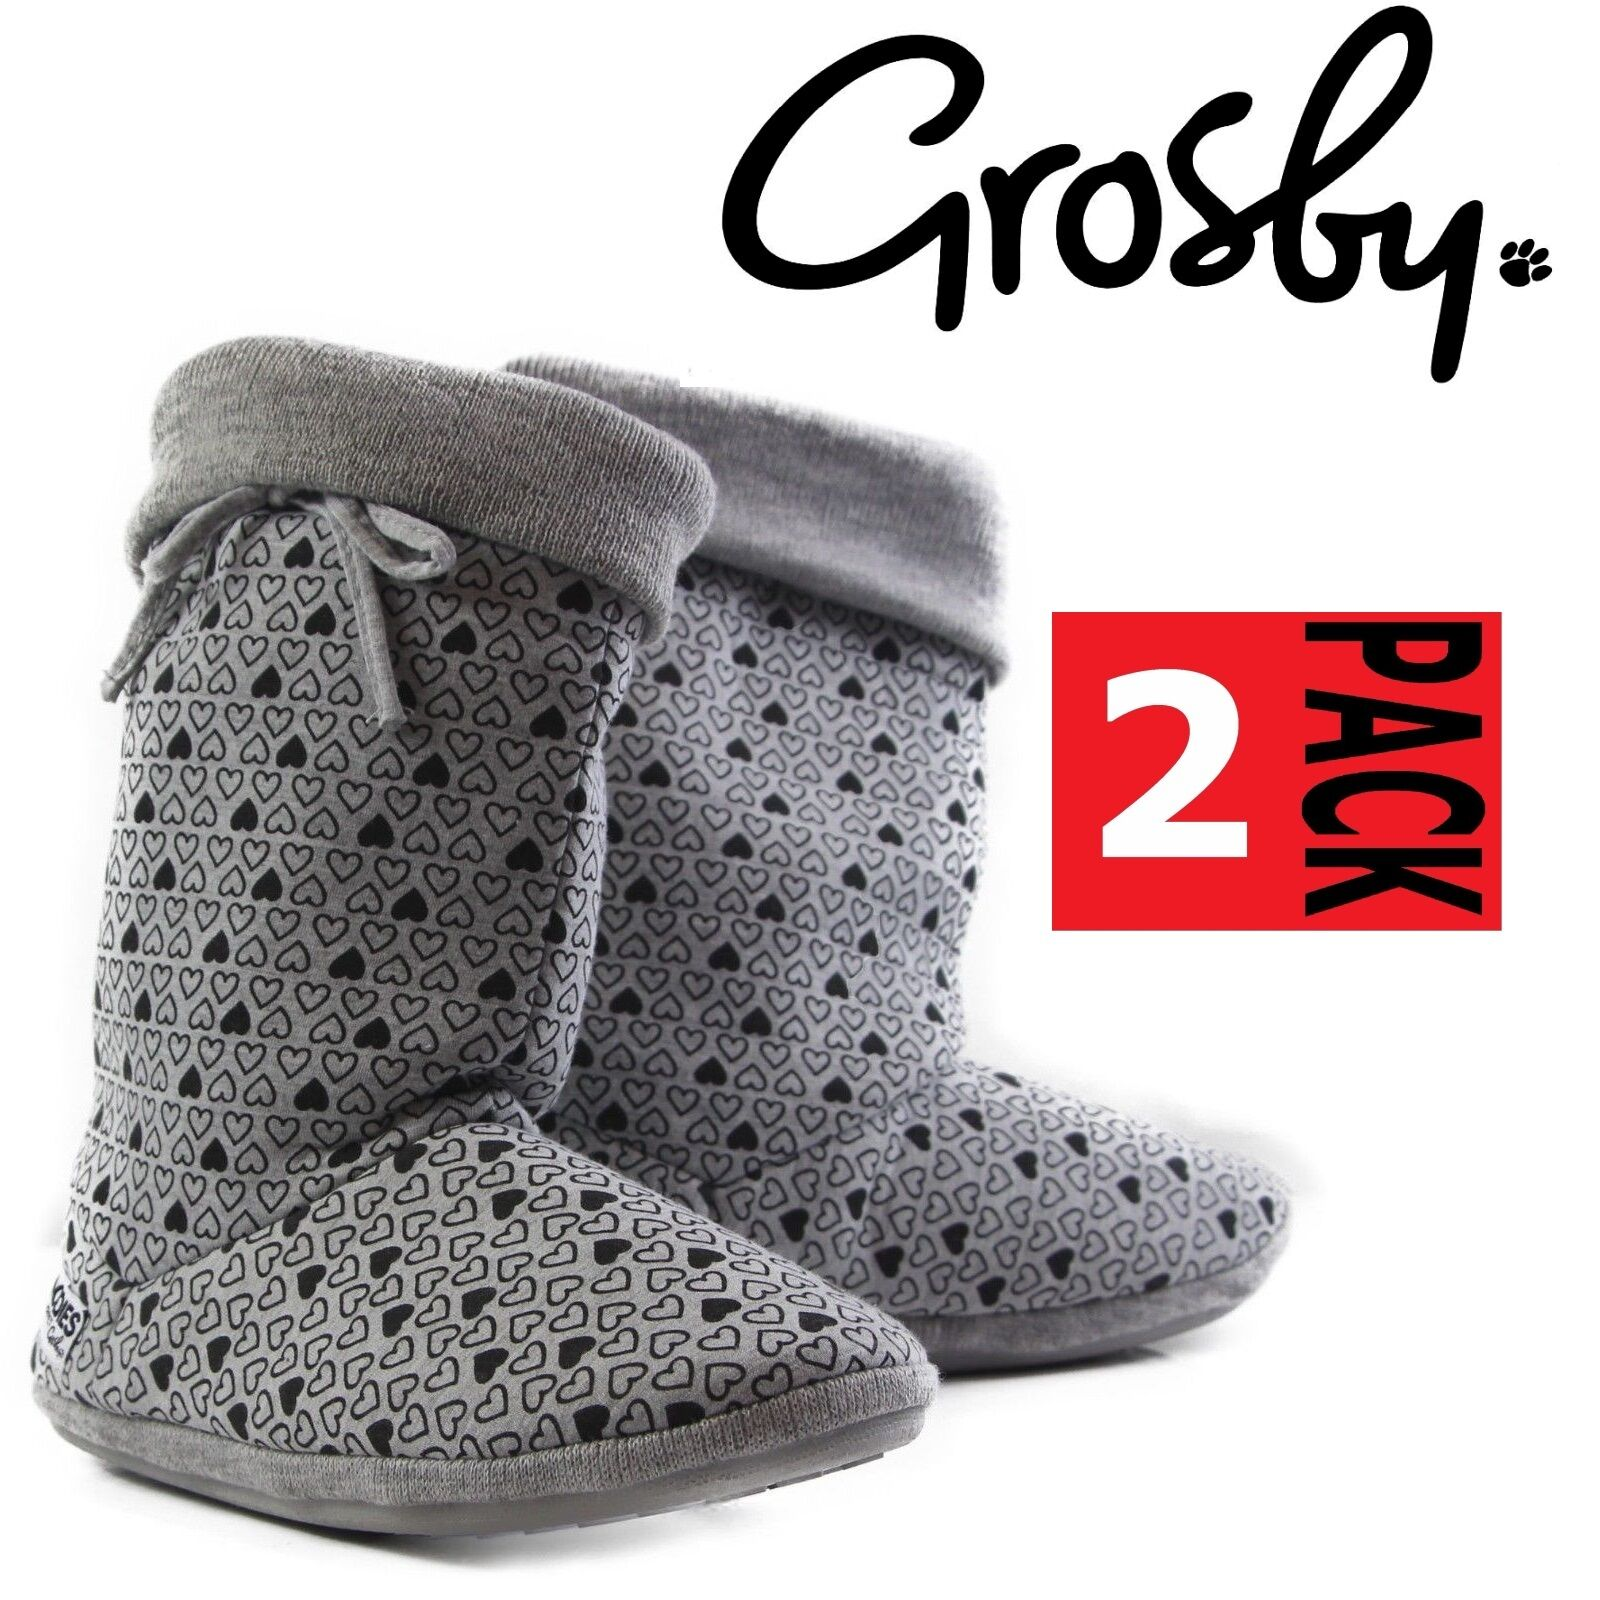 bb99943af67 Details about 2 PAIRS x Womens GROSBY HEARTS HOODIES BOOTS Grey Black  Slippers Ugg Boot Shoes